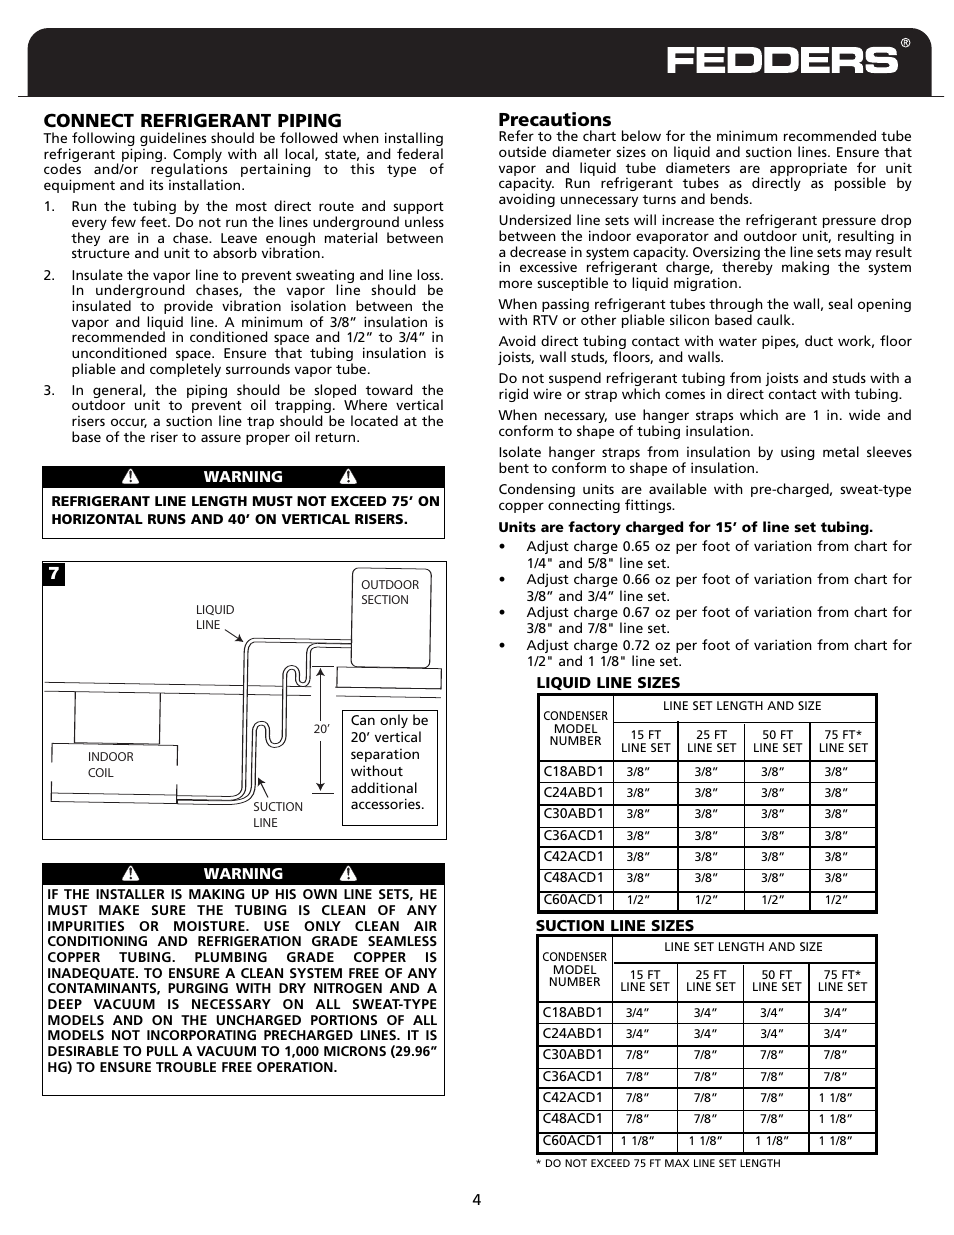 Connect Refrigerant Piping Precautions Fedders Split System Air Handler Wiring Diagram Conditioner User Manual Page 5 8